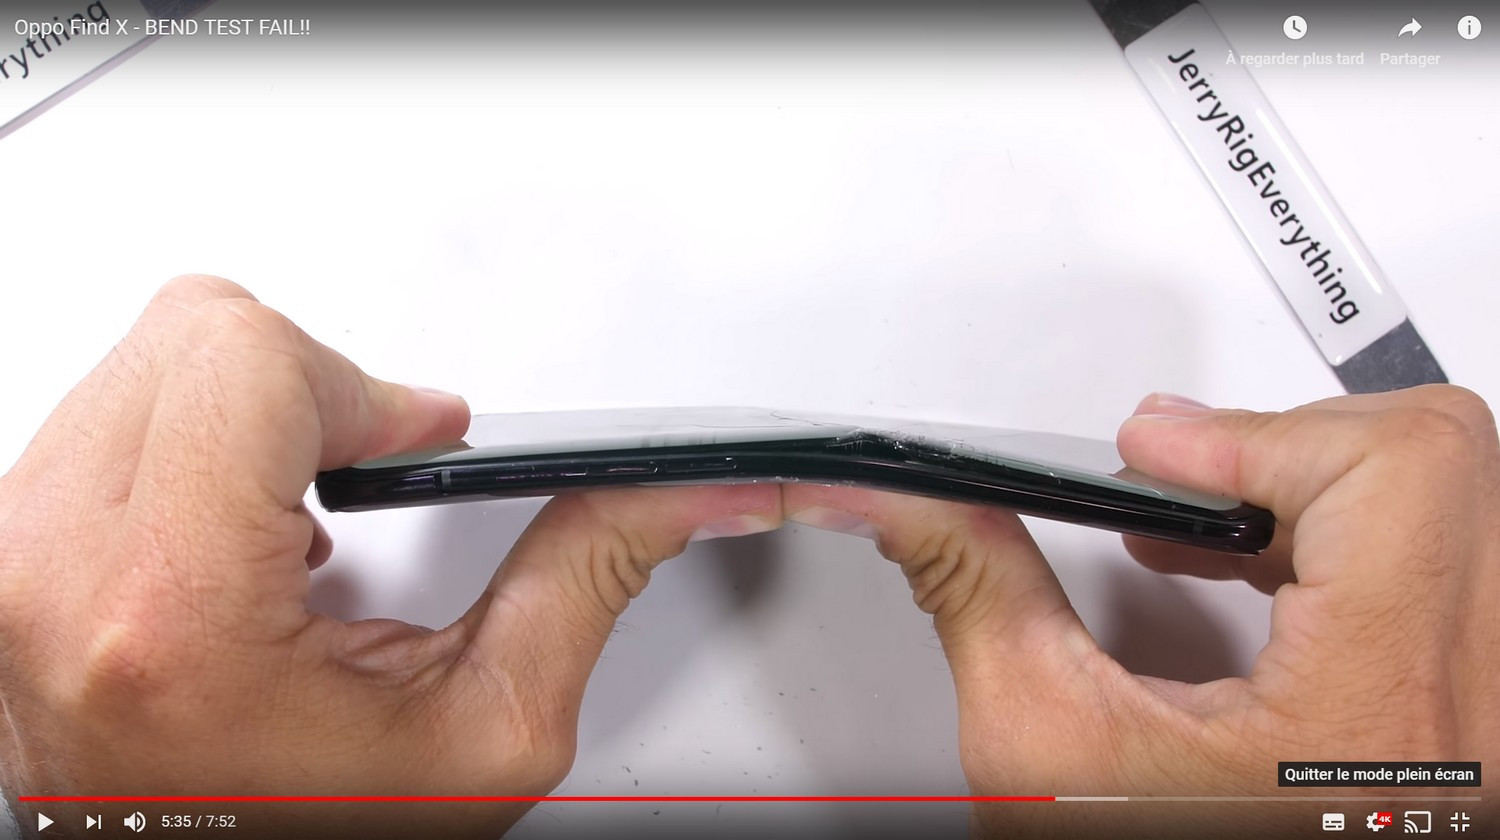 oppo-find-x-bend-test-fail (1).jpg